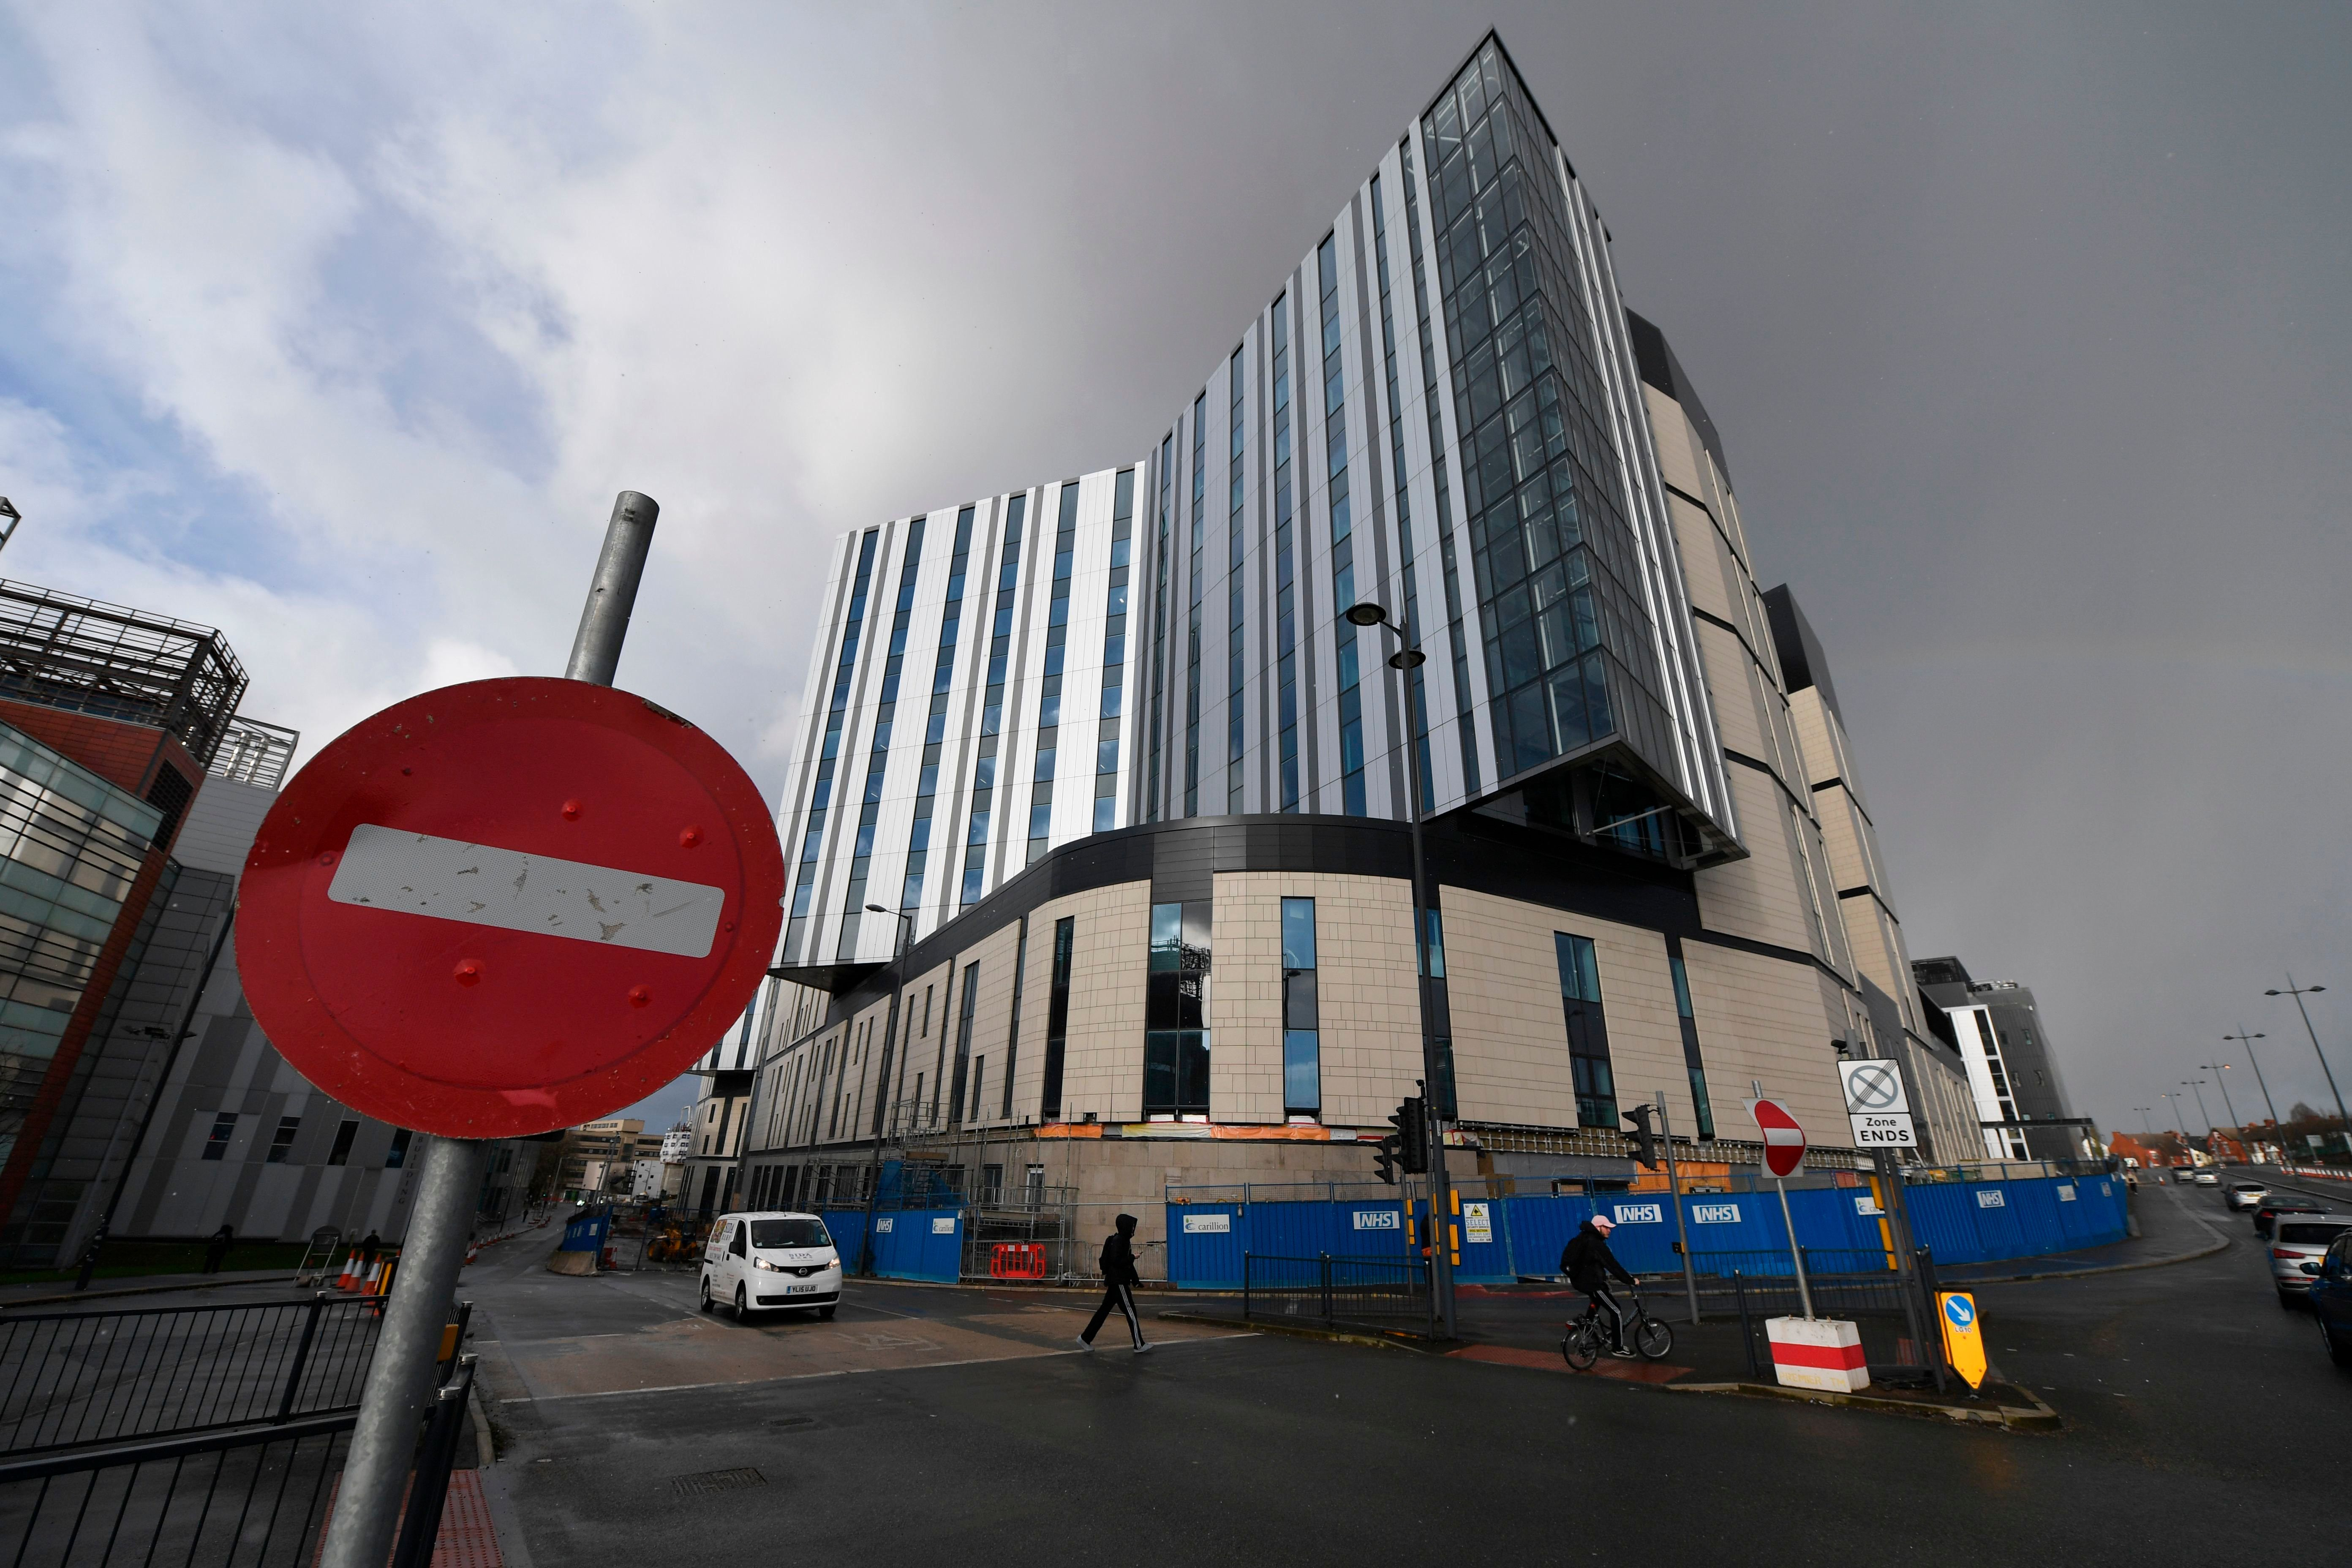 Labour Government 'Would Use Public Funds To Finish Hospital Left In Limbo By Carillion